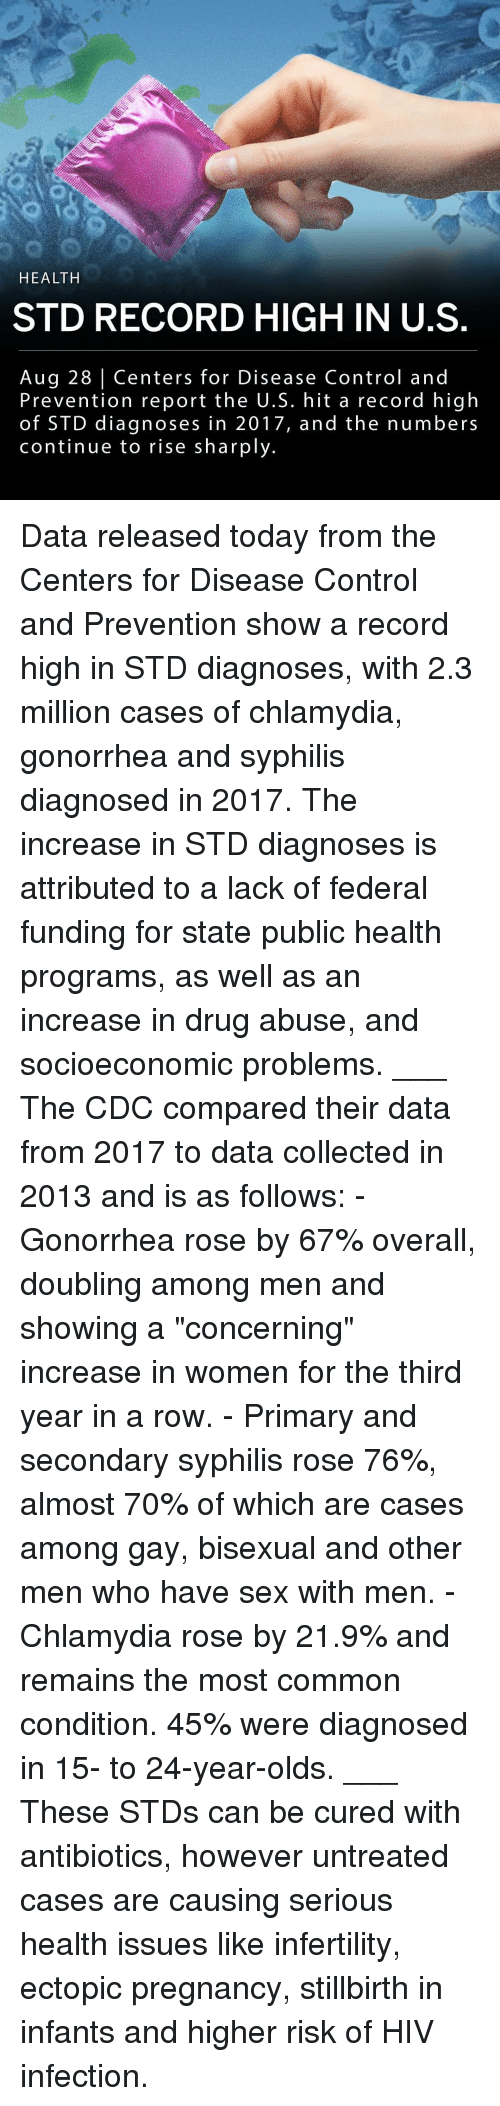 "Other Men: HEALTH  STD RECORD HIGH IN U.S  Aug 28 Centers for Disease Control and  Prevention report the U.S. hit a record high  of STD diagnoses in 2017, and the numbers  continue to rise sharply. Data released today from the Centers for Disease Control and Prevention show a record high in STD diagnoses, with 2.3 million cases of chlamydia, gonorrhea and syphilis diagnosed in 2017. The increase in STD diagnoses is attributed to a lack of federal funding for state public health programs, as well as an increase in drug abuse, and socioeconomic problems. ___ The CDC compared their data from 2017 to data collected in 2013 and is as follows: - Gonorrhea rose by 67% overall, doubling among men and showing a ""concerning"" increase in women for the third year in a row. - Primary and secondary syphilis rose 76%, almost 70% of which are cases among gay, bisexual and other men who have sex with men. - Chlamydia rose by 21.9% and remains the most common condition. 45% were diagnosed in 15- to 24-year-olds. ___ These STDs can be cured with antibiotics, however untreated cases are causing serious health issues like infertility, ectopic pregnancy, stillbirth in infants and higher risk of HIV infection."